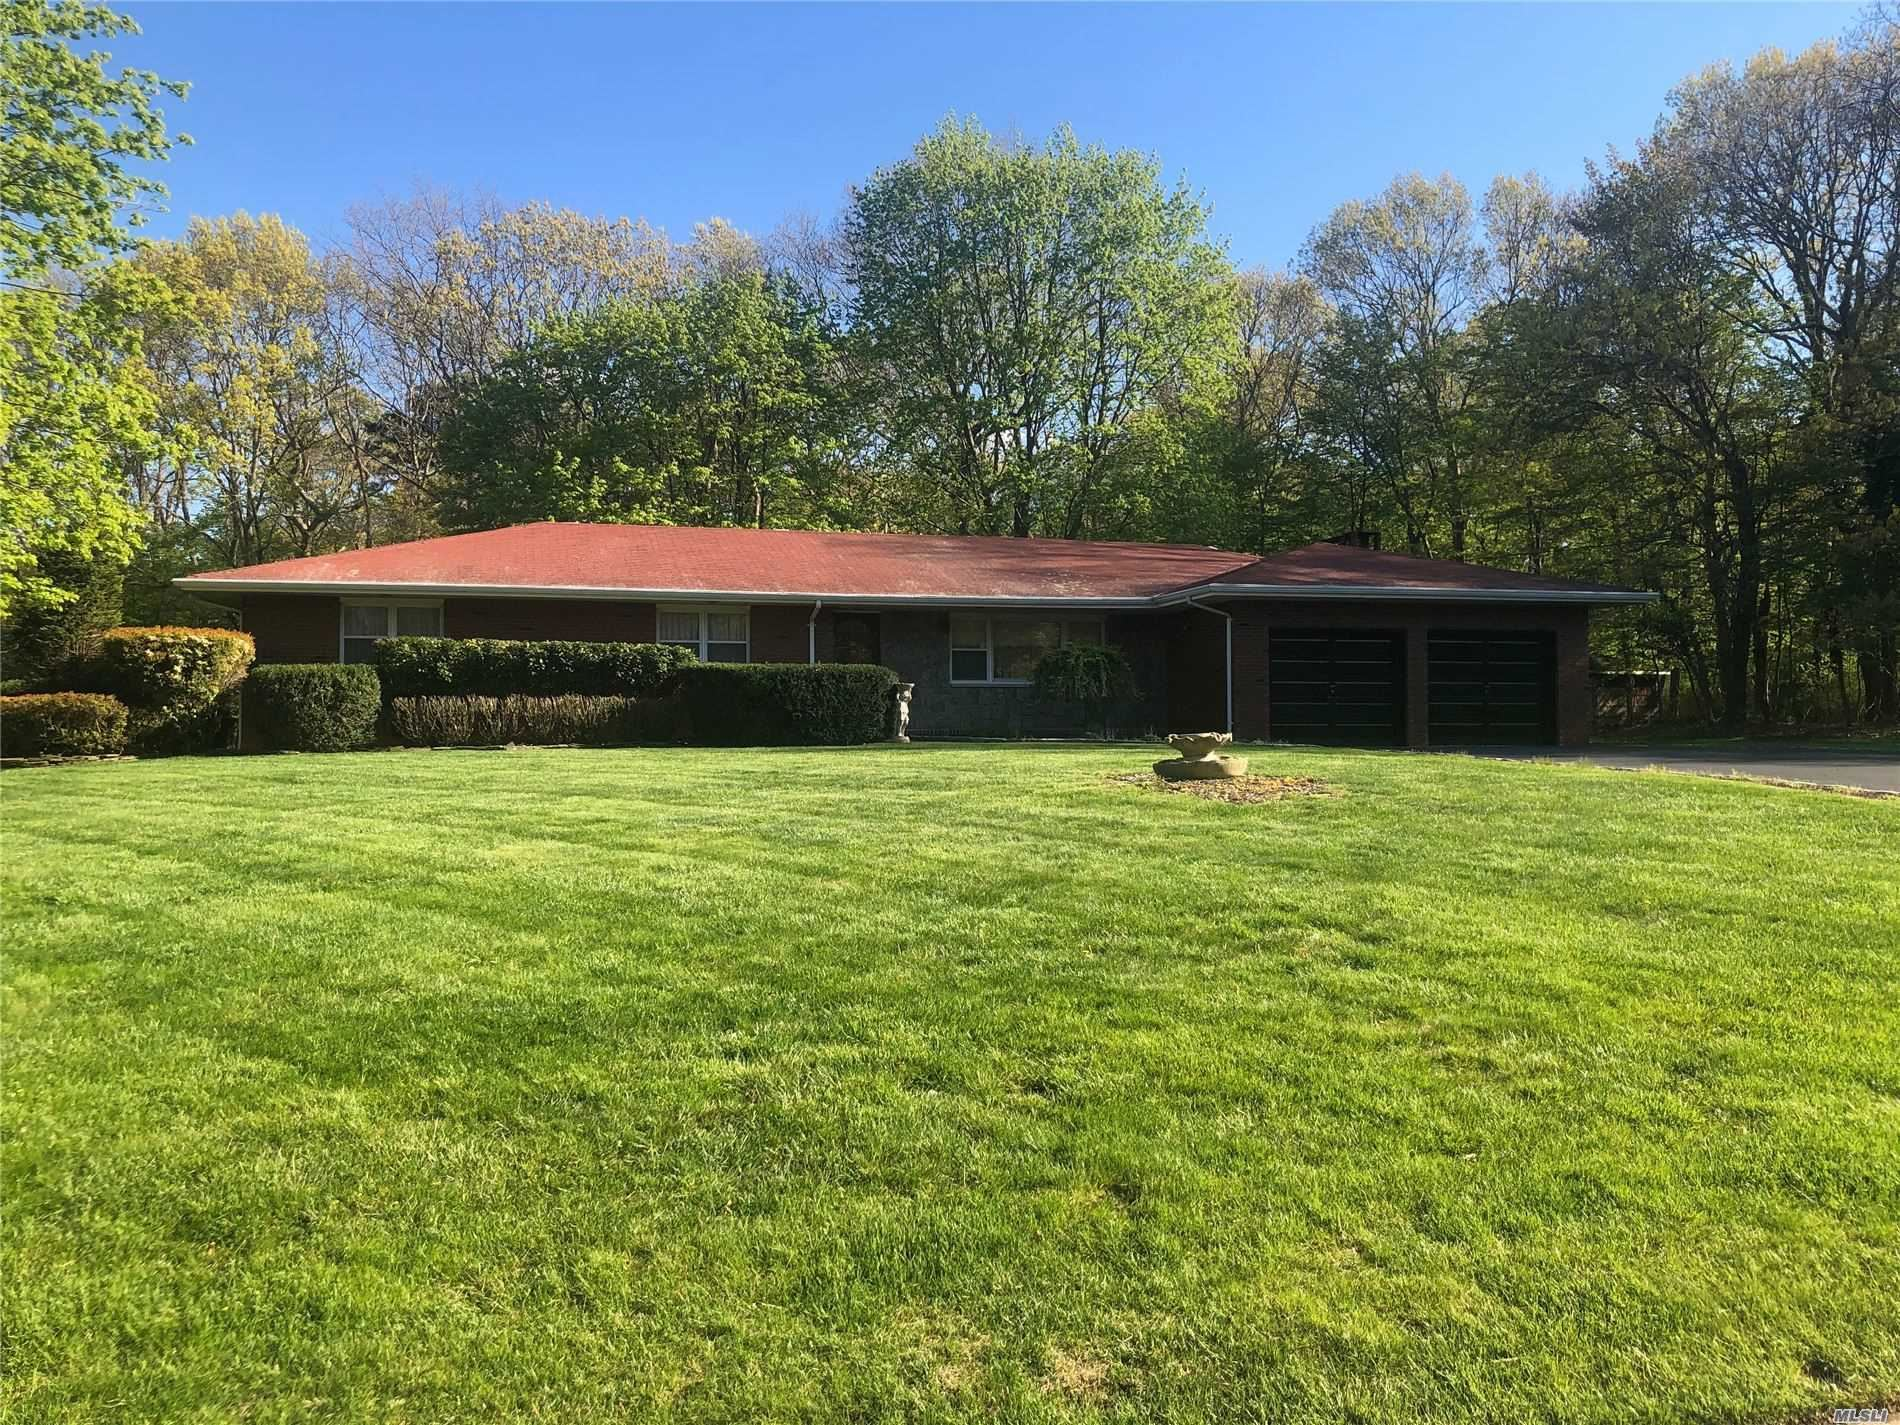 31 Circle Drive, Shoreham, NY 11786 - MLS#: 3199691